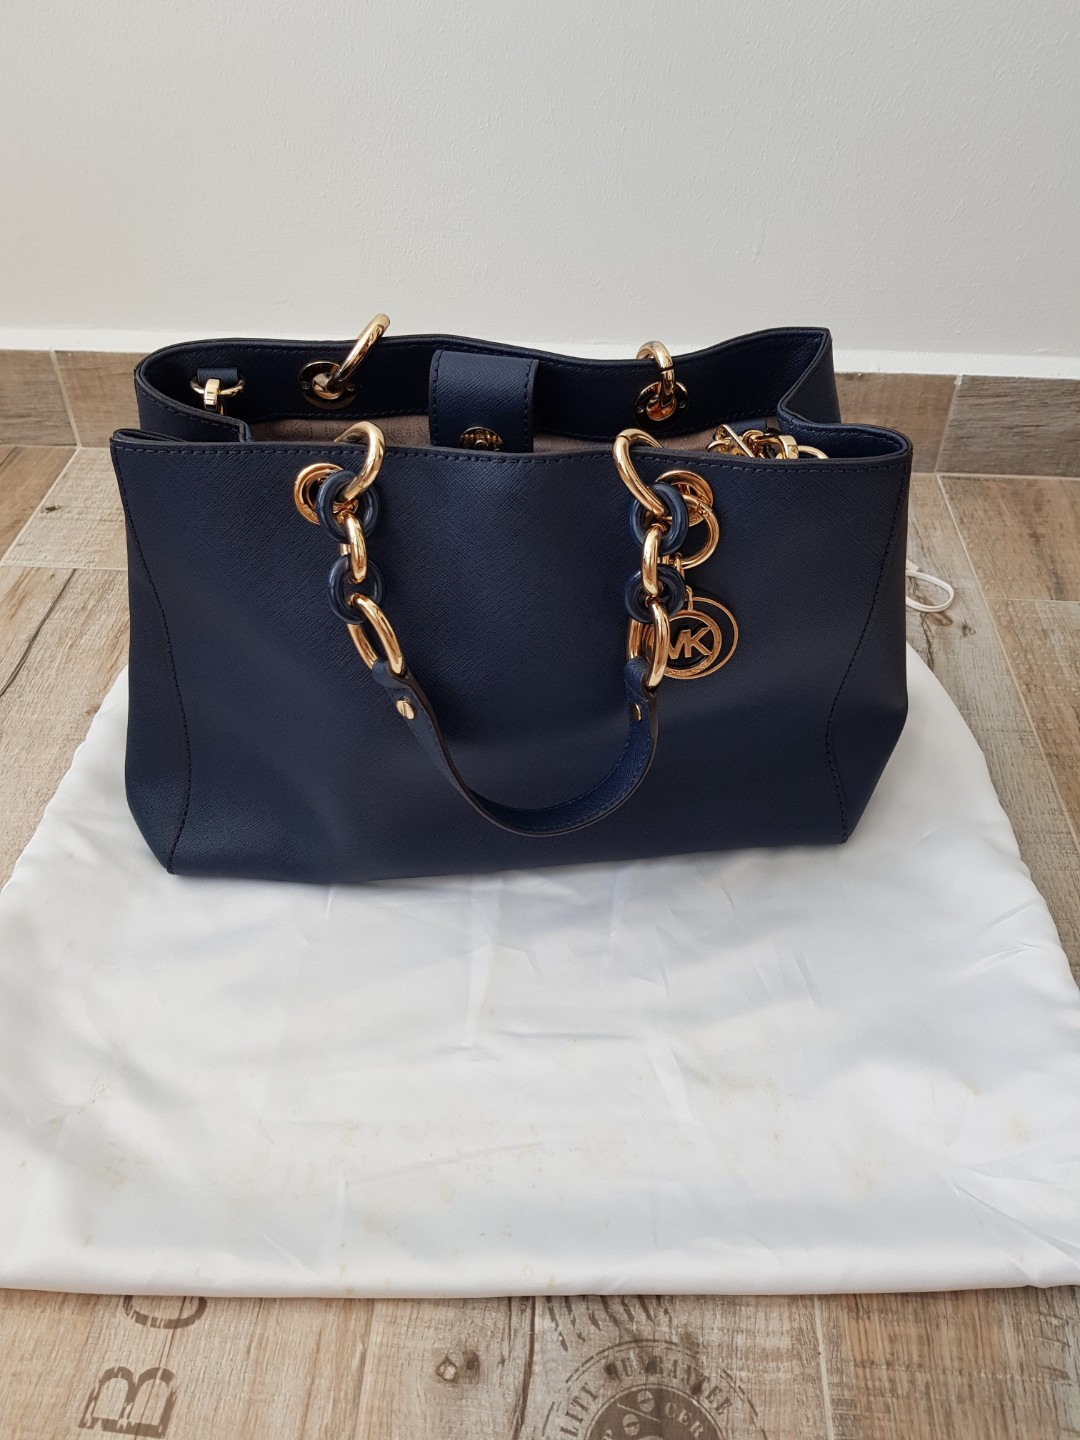 c2f1eee32fa1 New Year SALES Michael kor sling and hand bag